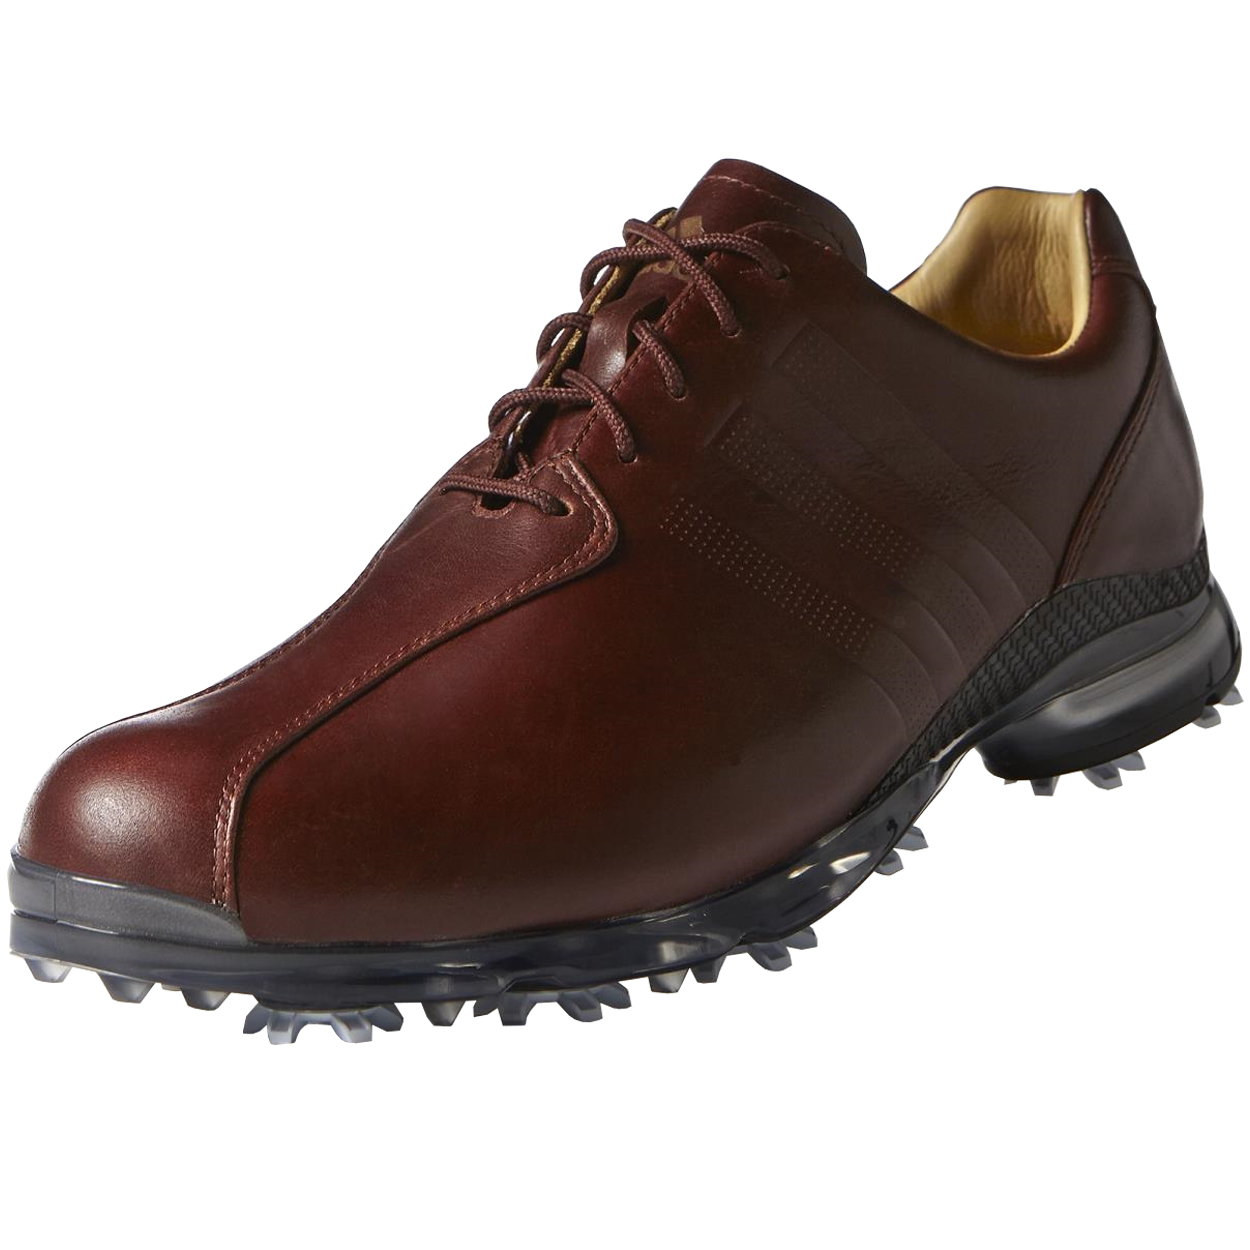 online store 10a63 9a5c9 Adidas adipure TP Leather Golf Shoe